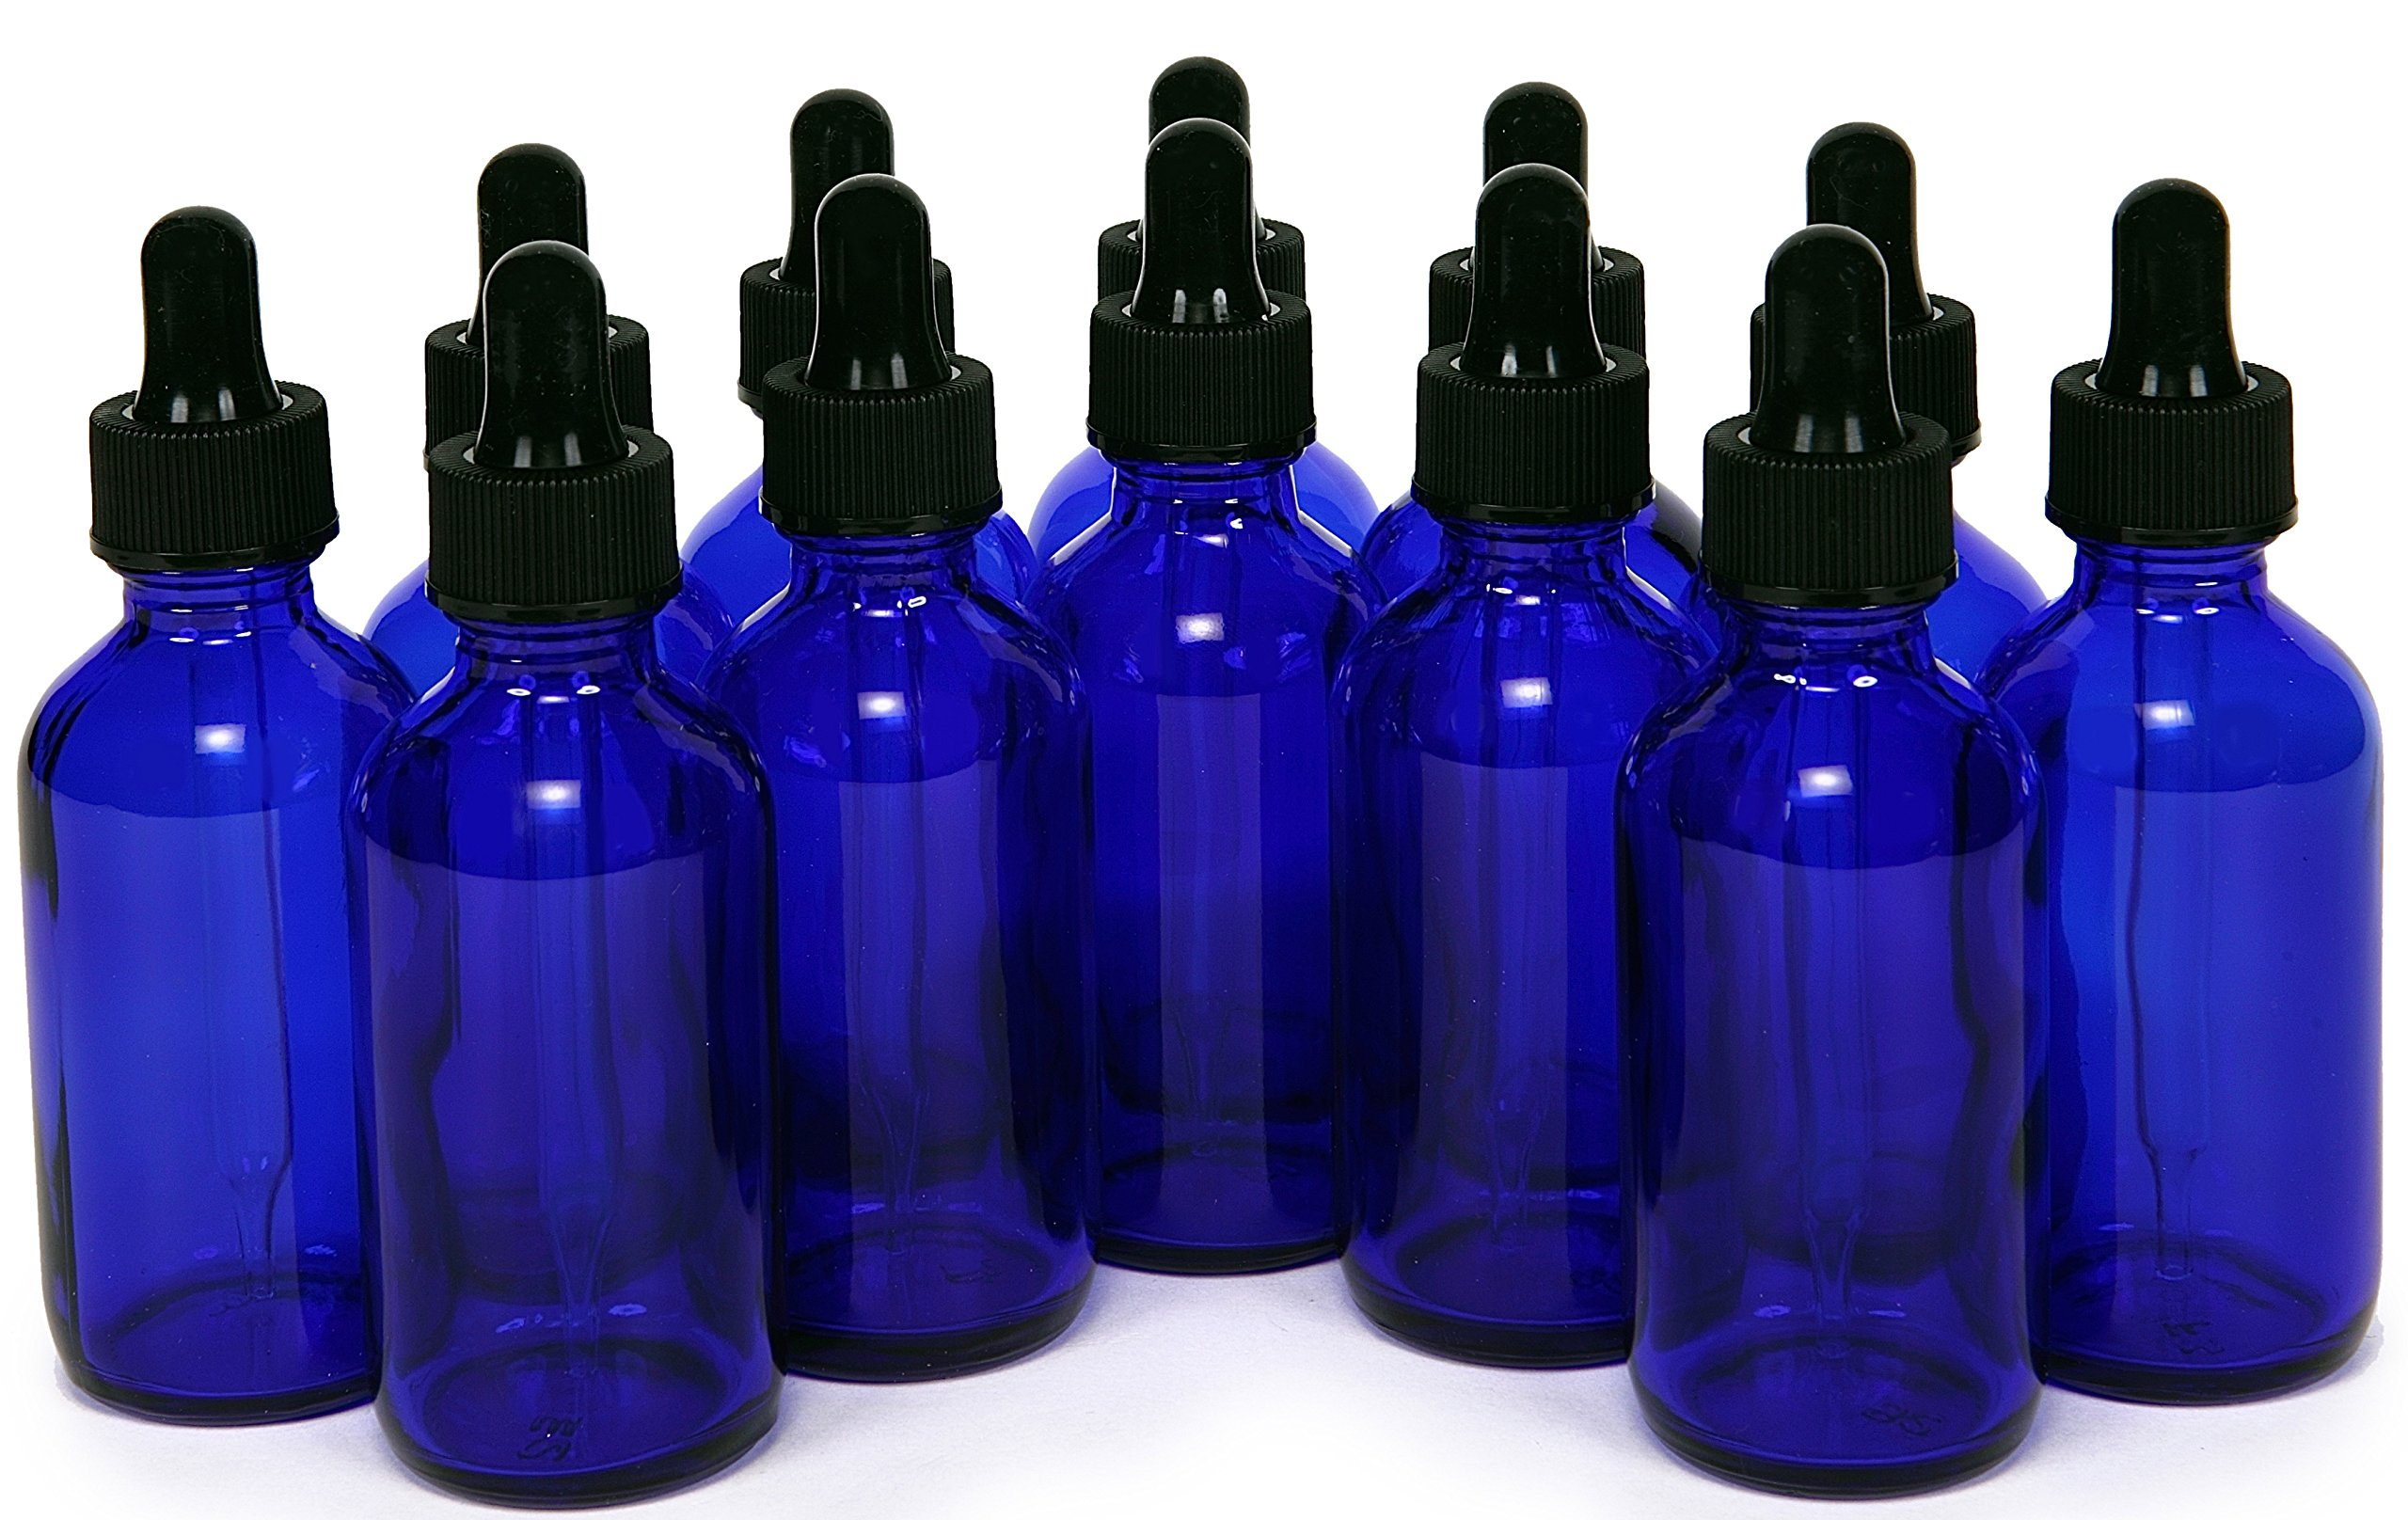 Cobalt Blue Glass Bottles Droppers